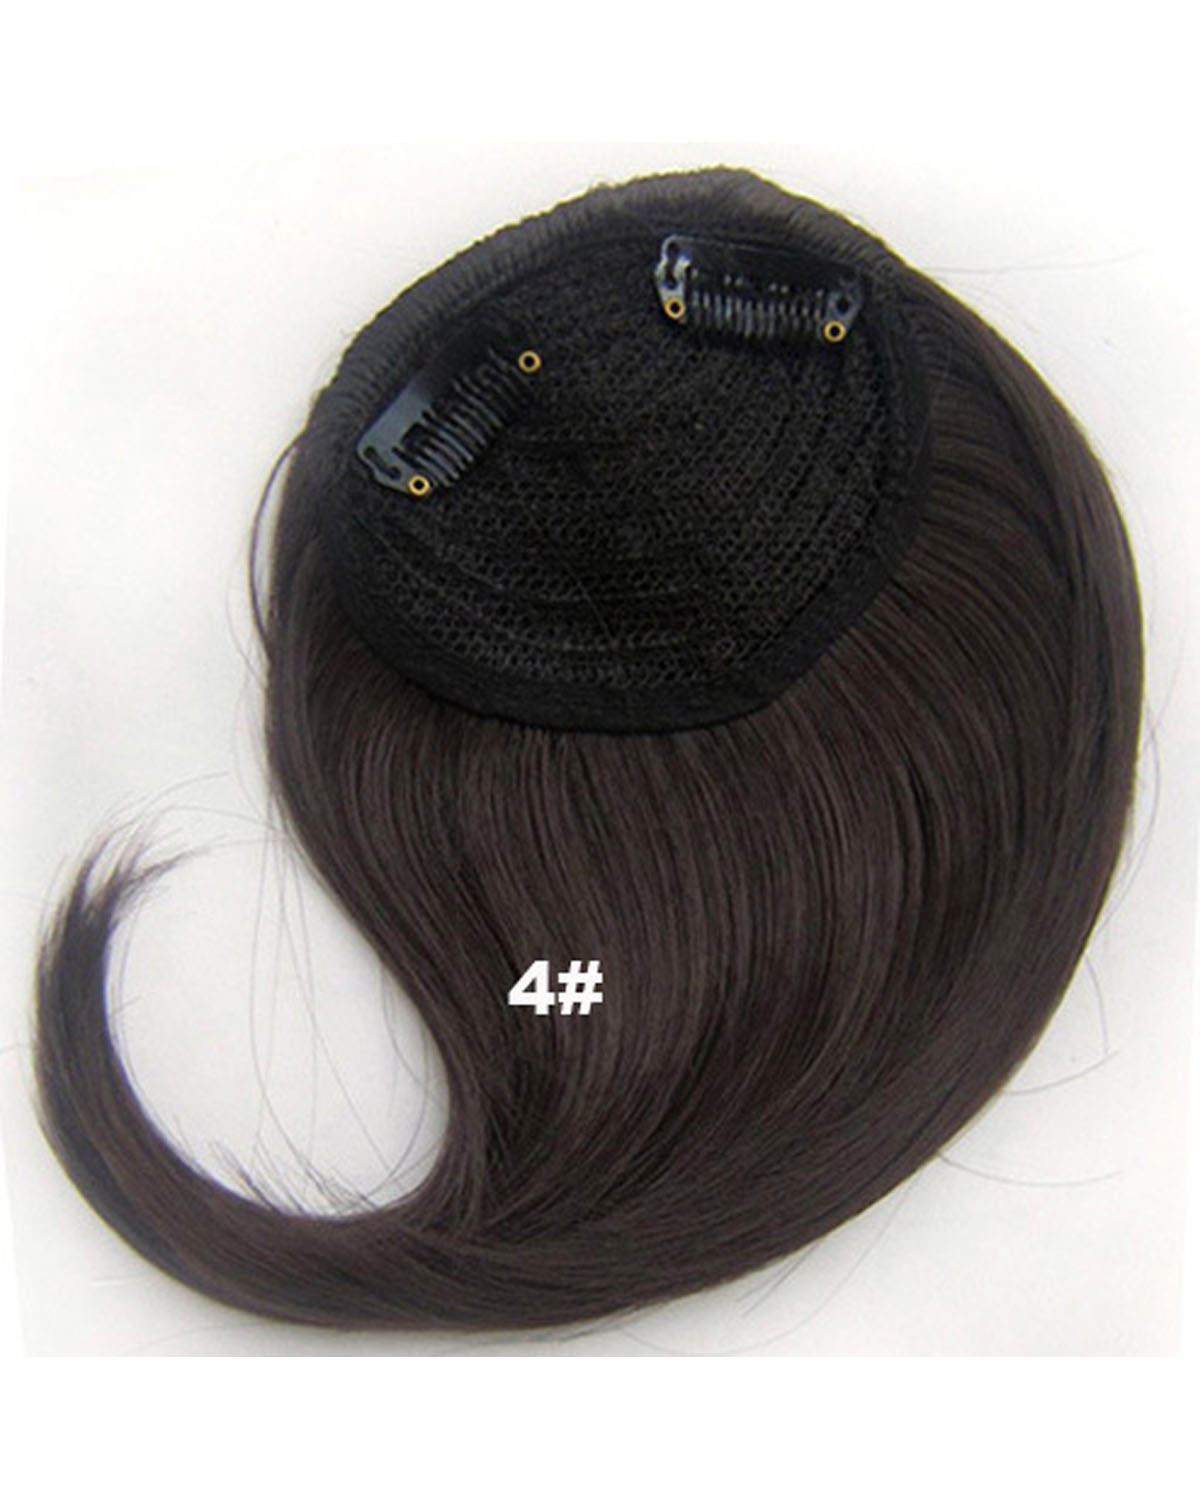 Girls  Faddish Straight Short Bangs Clip in Synthetic Hair Extension Fringe Bangs Hairpiece 4#